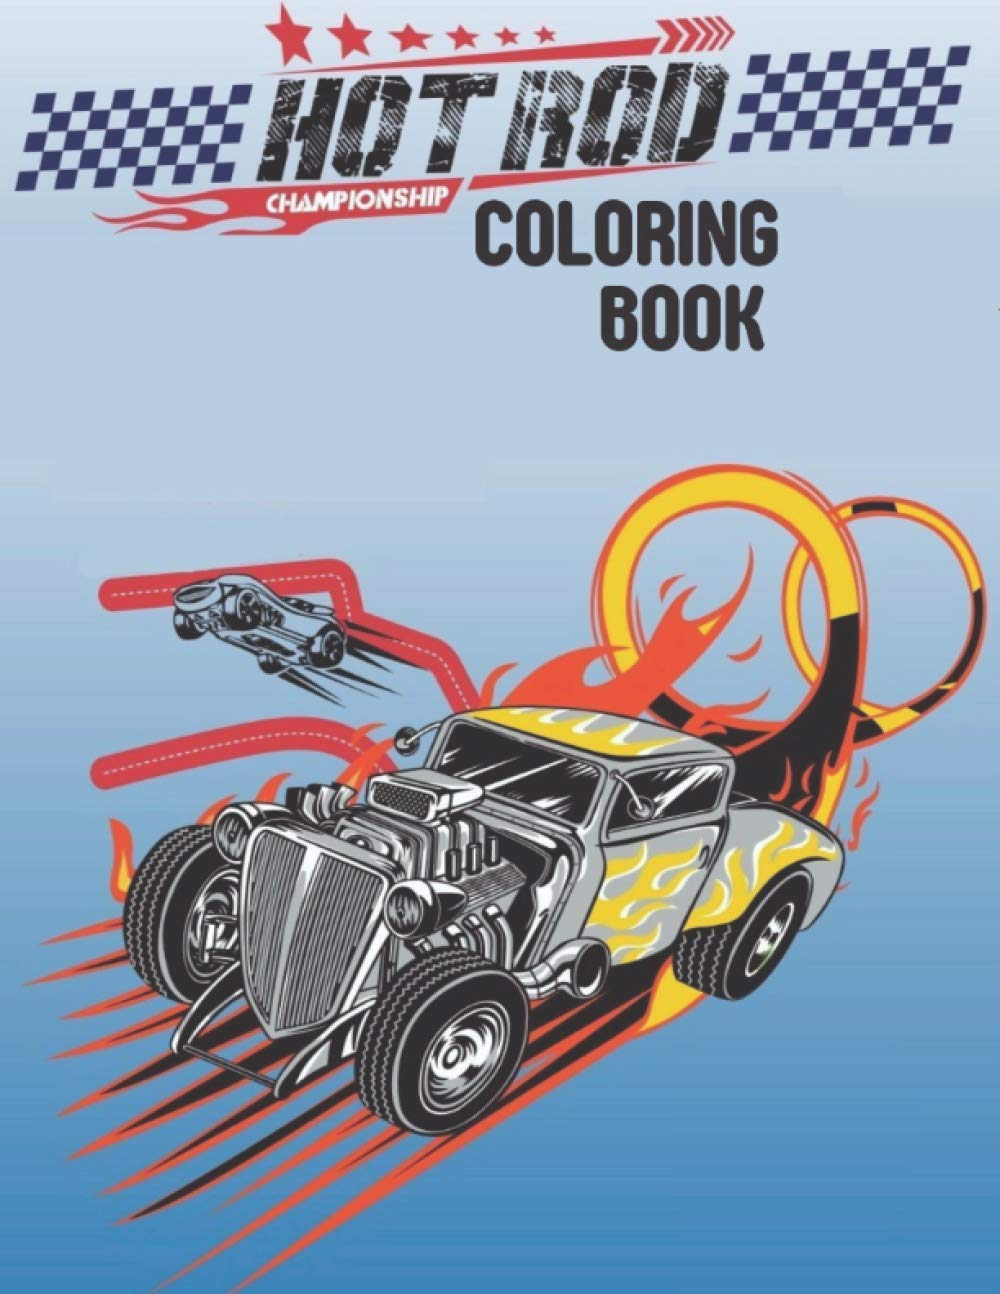 Hot Rod Coloring Book 35 Hot Rod Coloring Pages For Adults Boys Kids For All Ages Stubbs Bruce E 9798553471200 Amazon Com Books